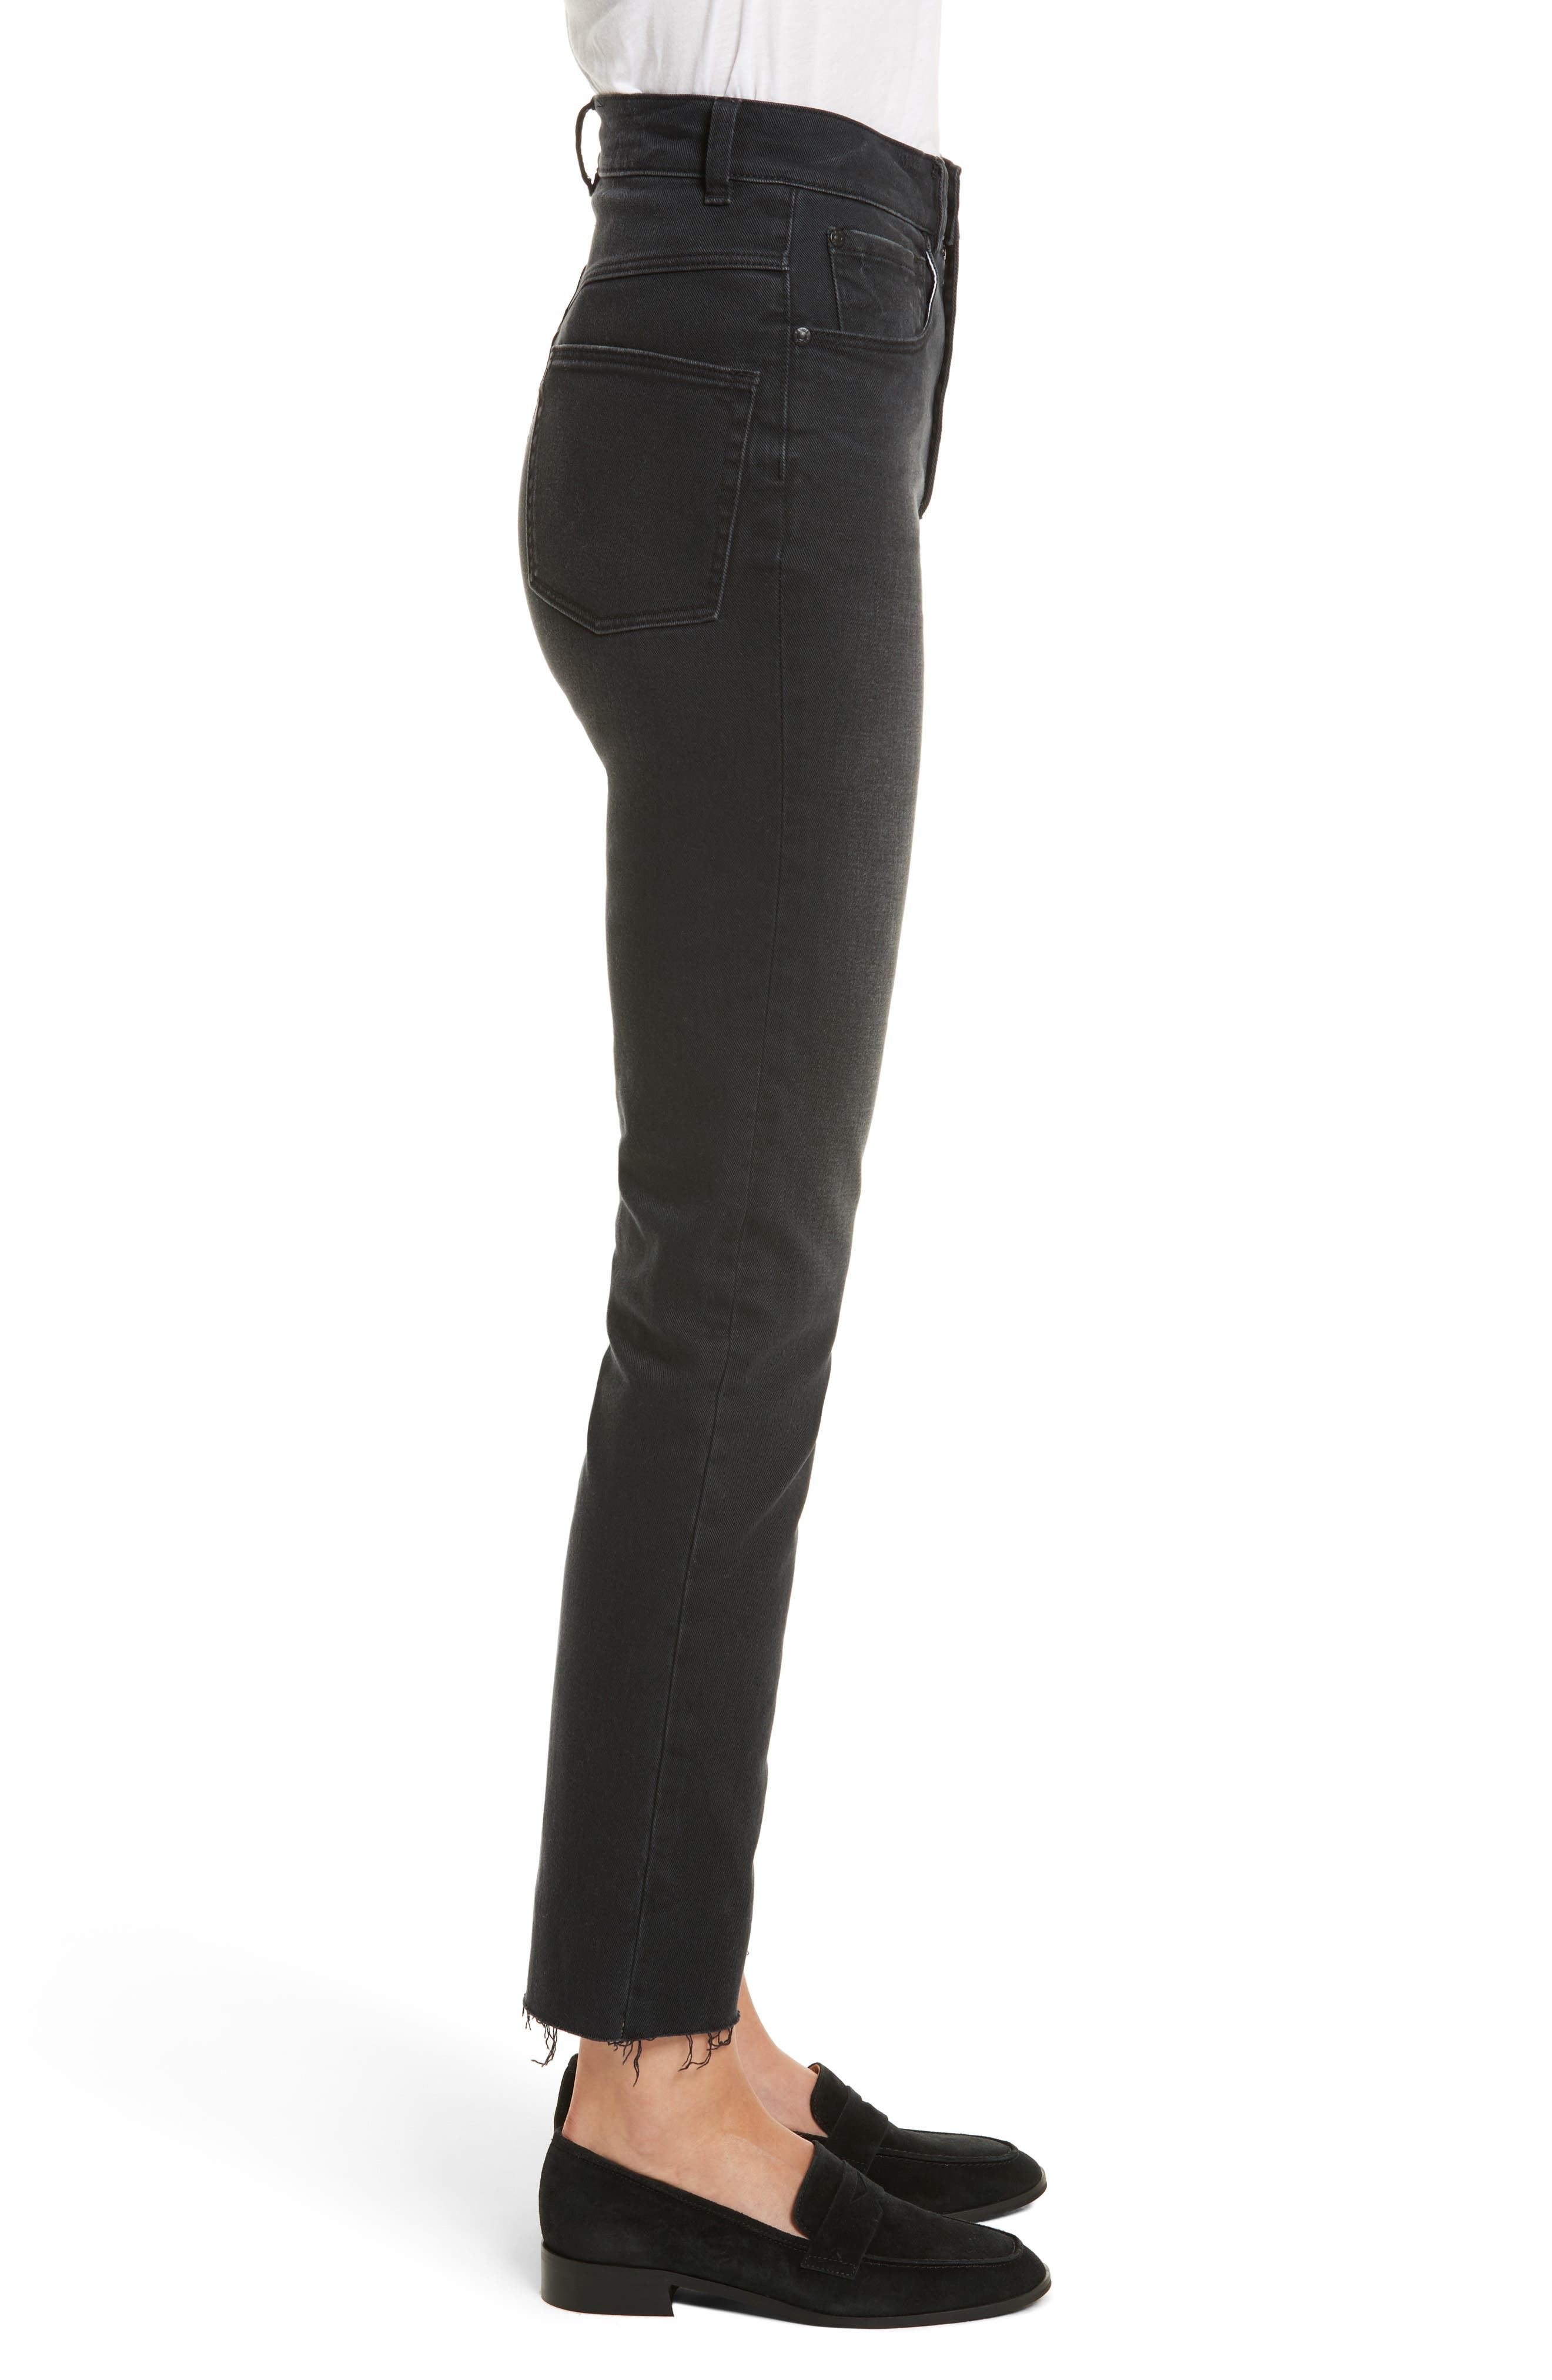 Ines Crop High Waist Skinny Jeans,                             Alternate thumbnail 3, color,                             Charcoal Wash